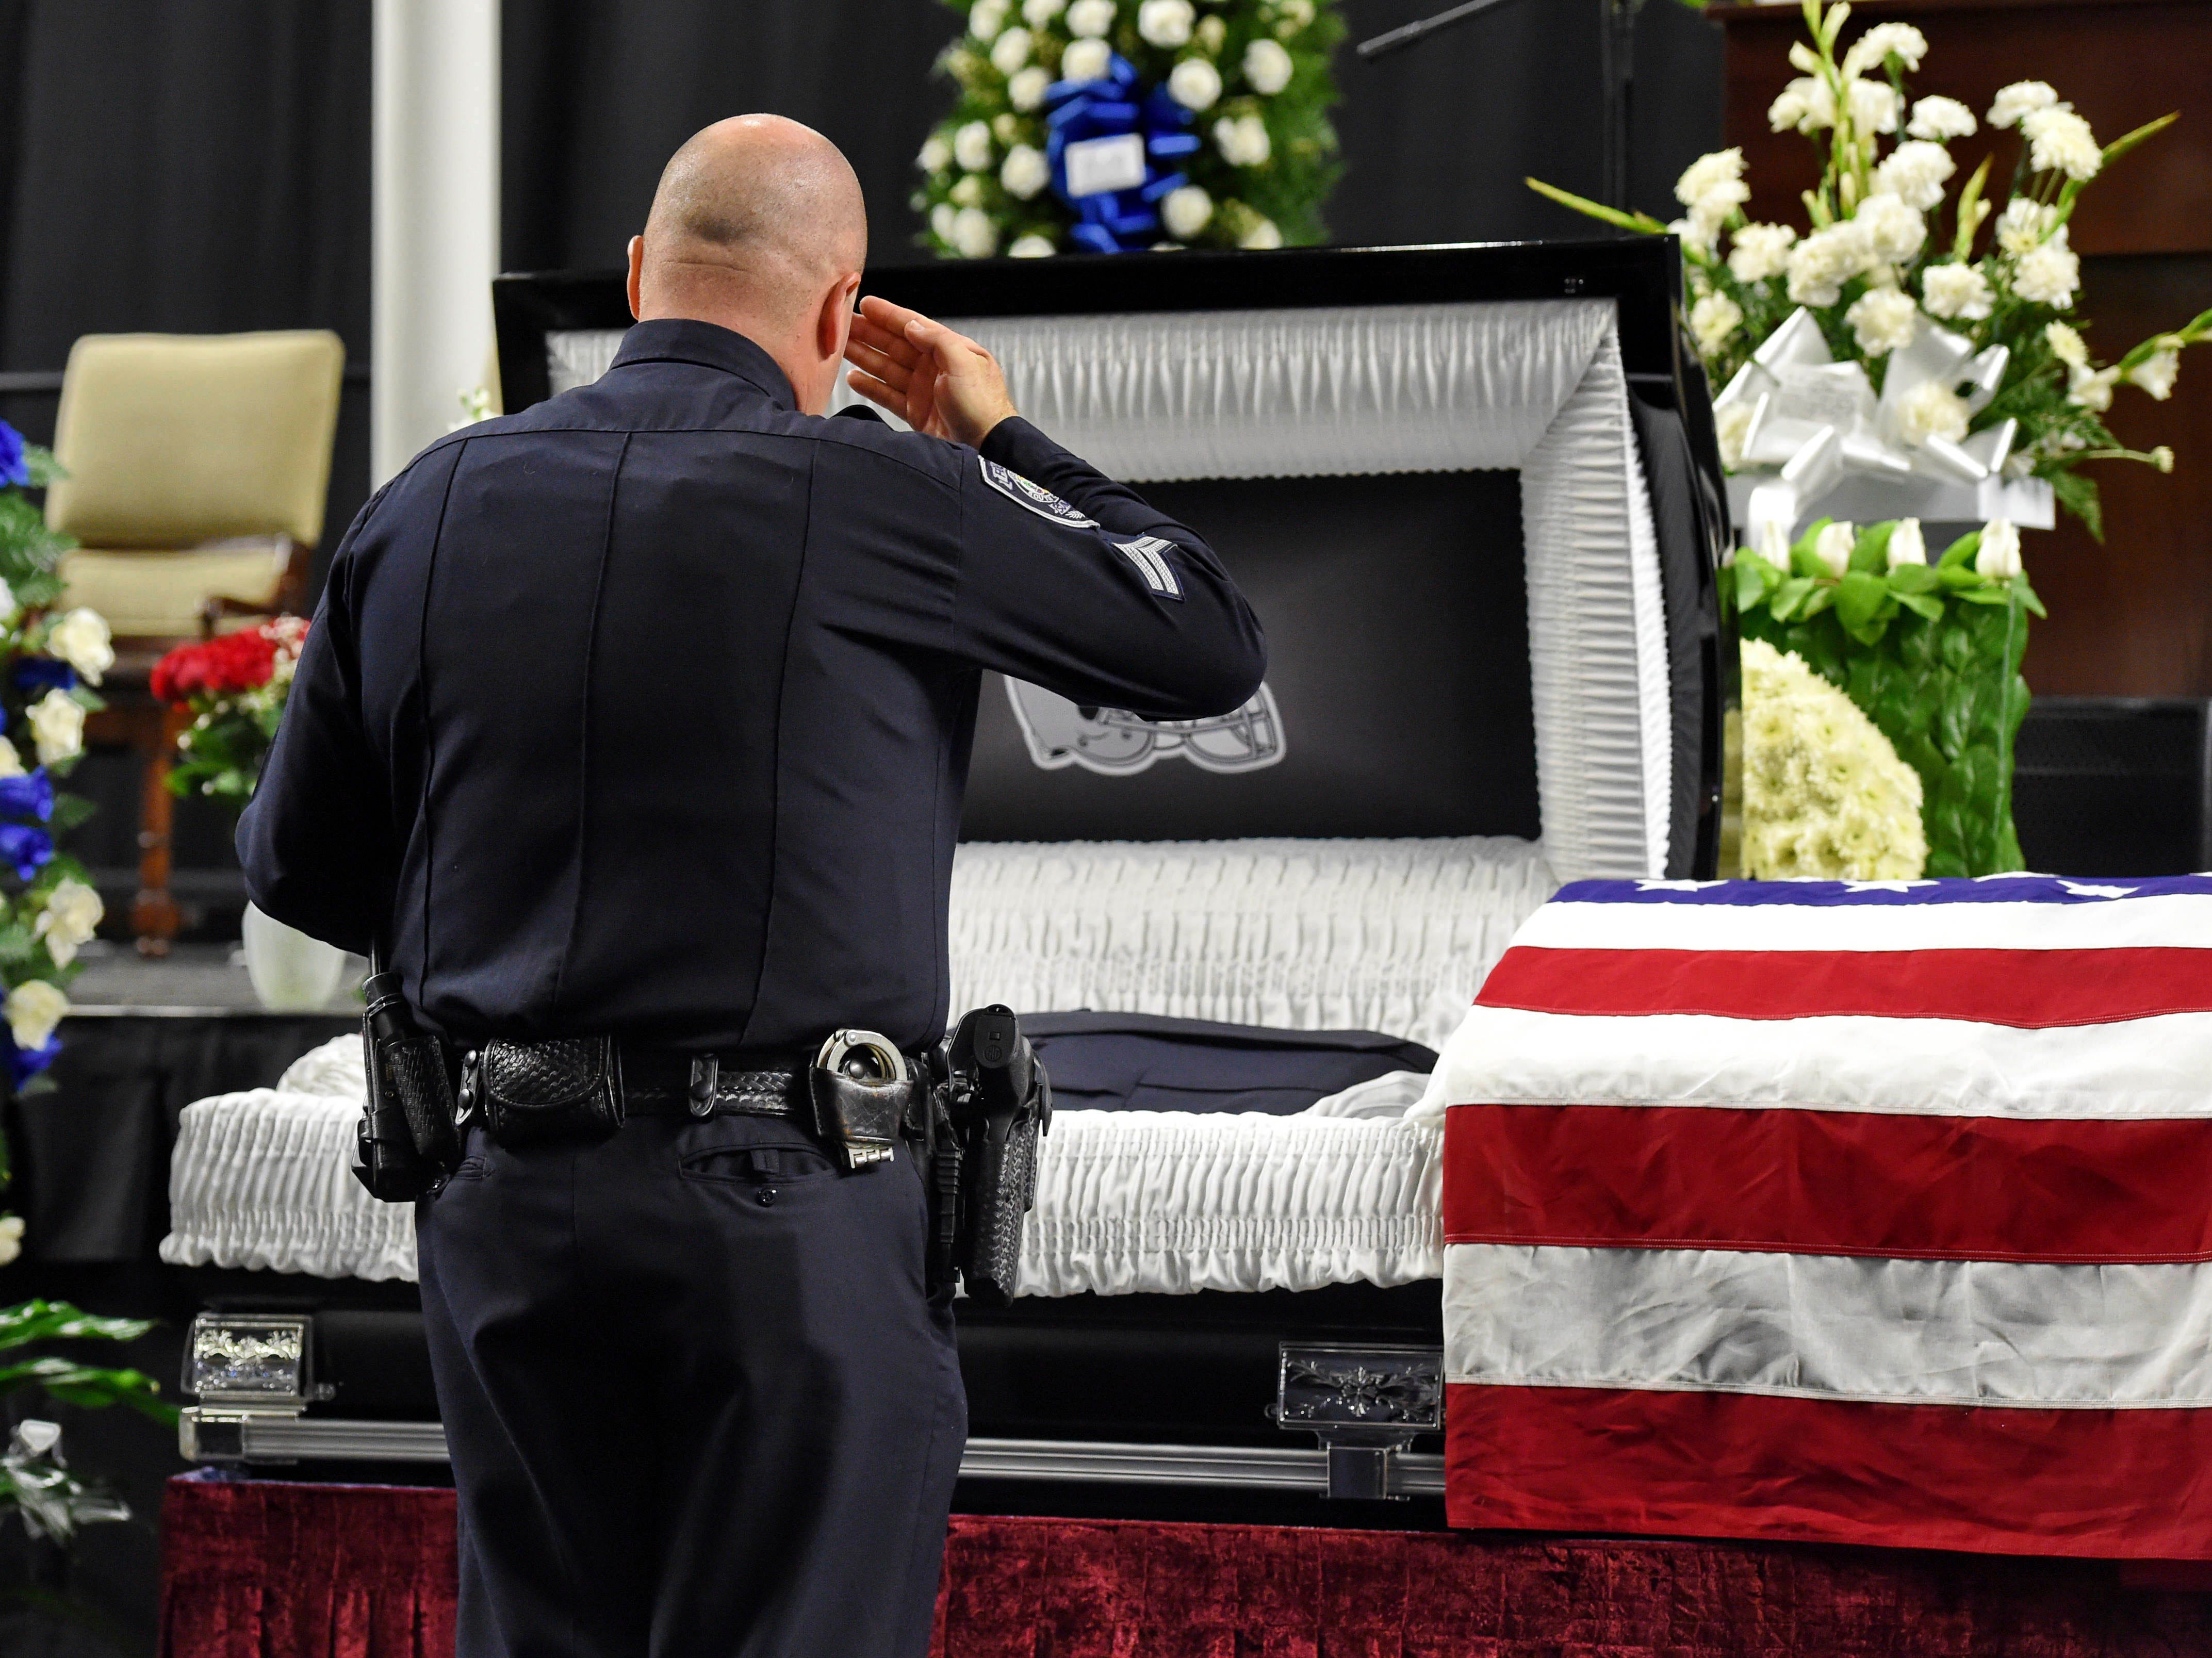 144 police officers died in the line of duty in 2018, reversing a one-year decline